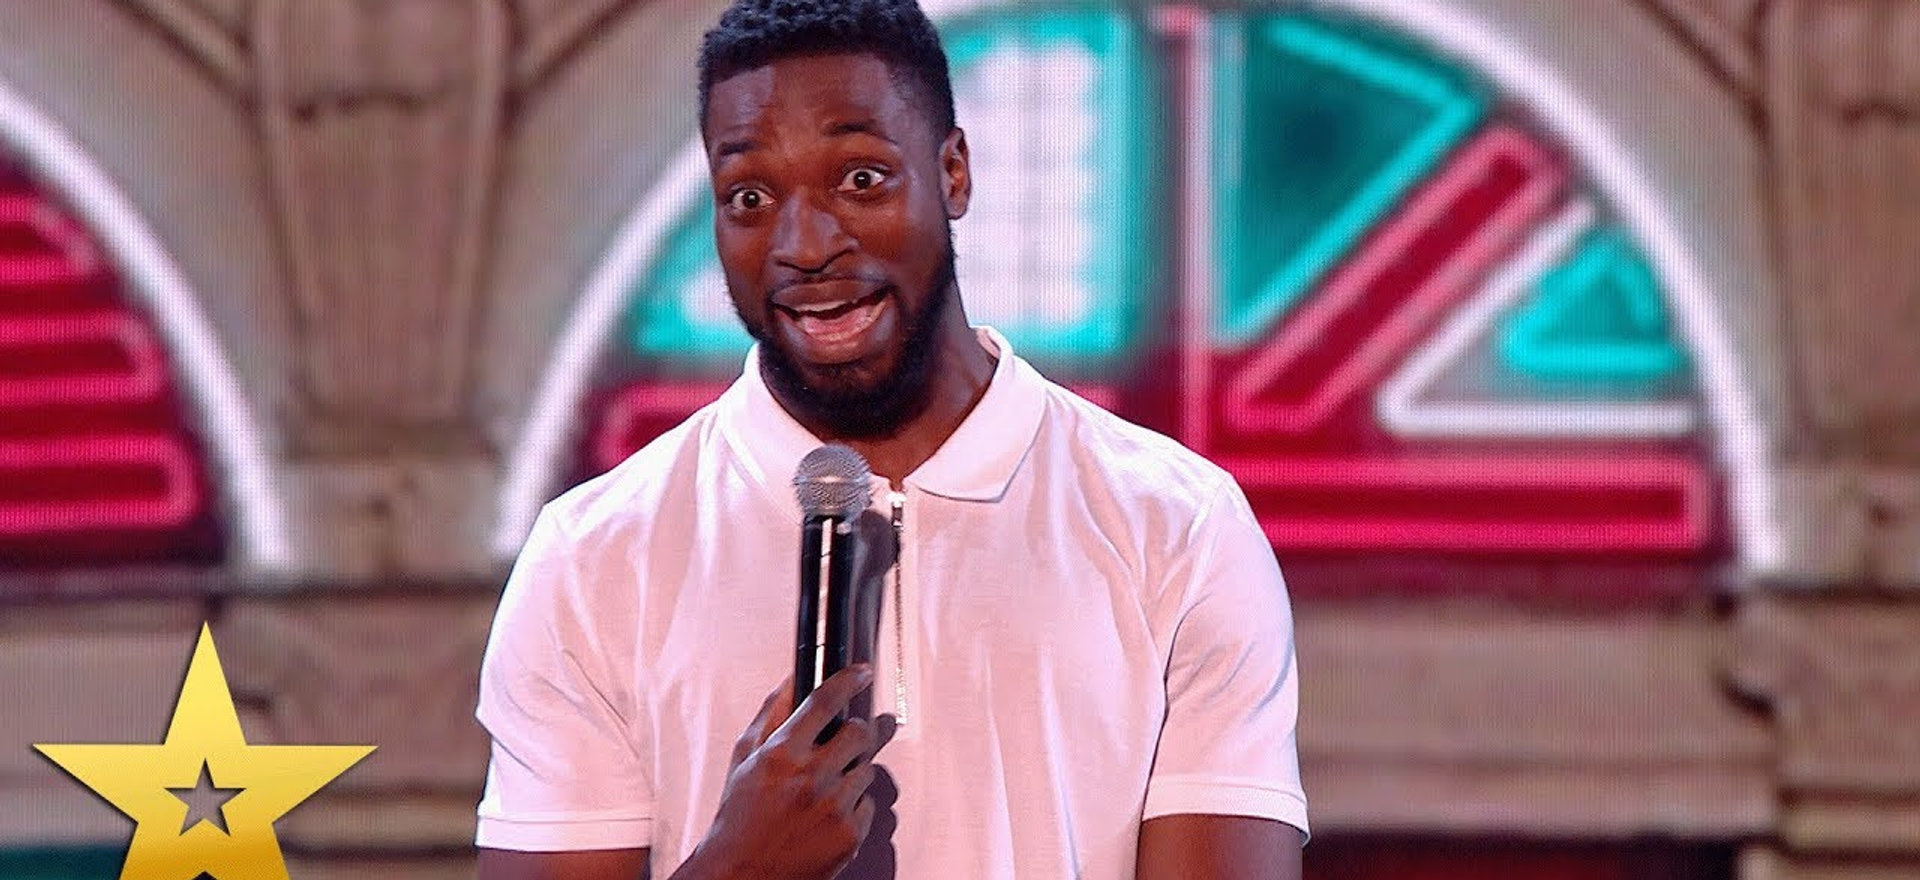 Preacher Lawson - Britain's Got Talent: The Champions